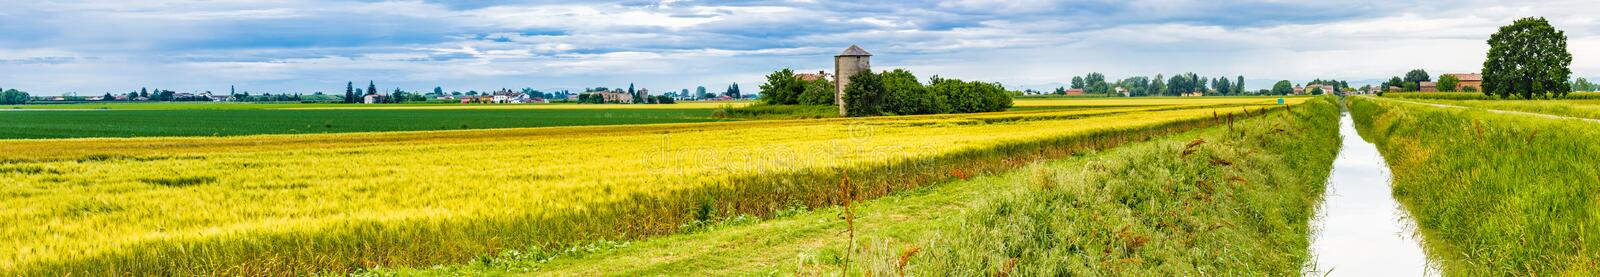 cultivated fields stock photo